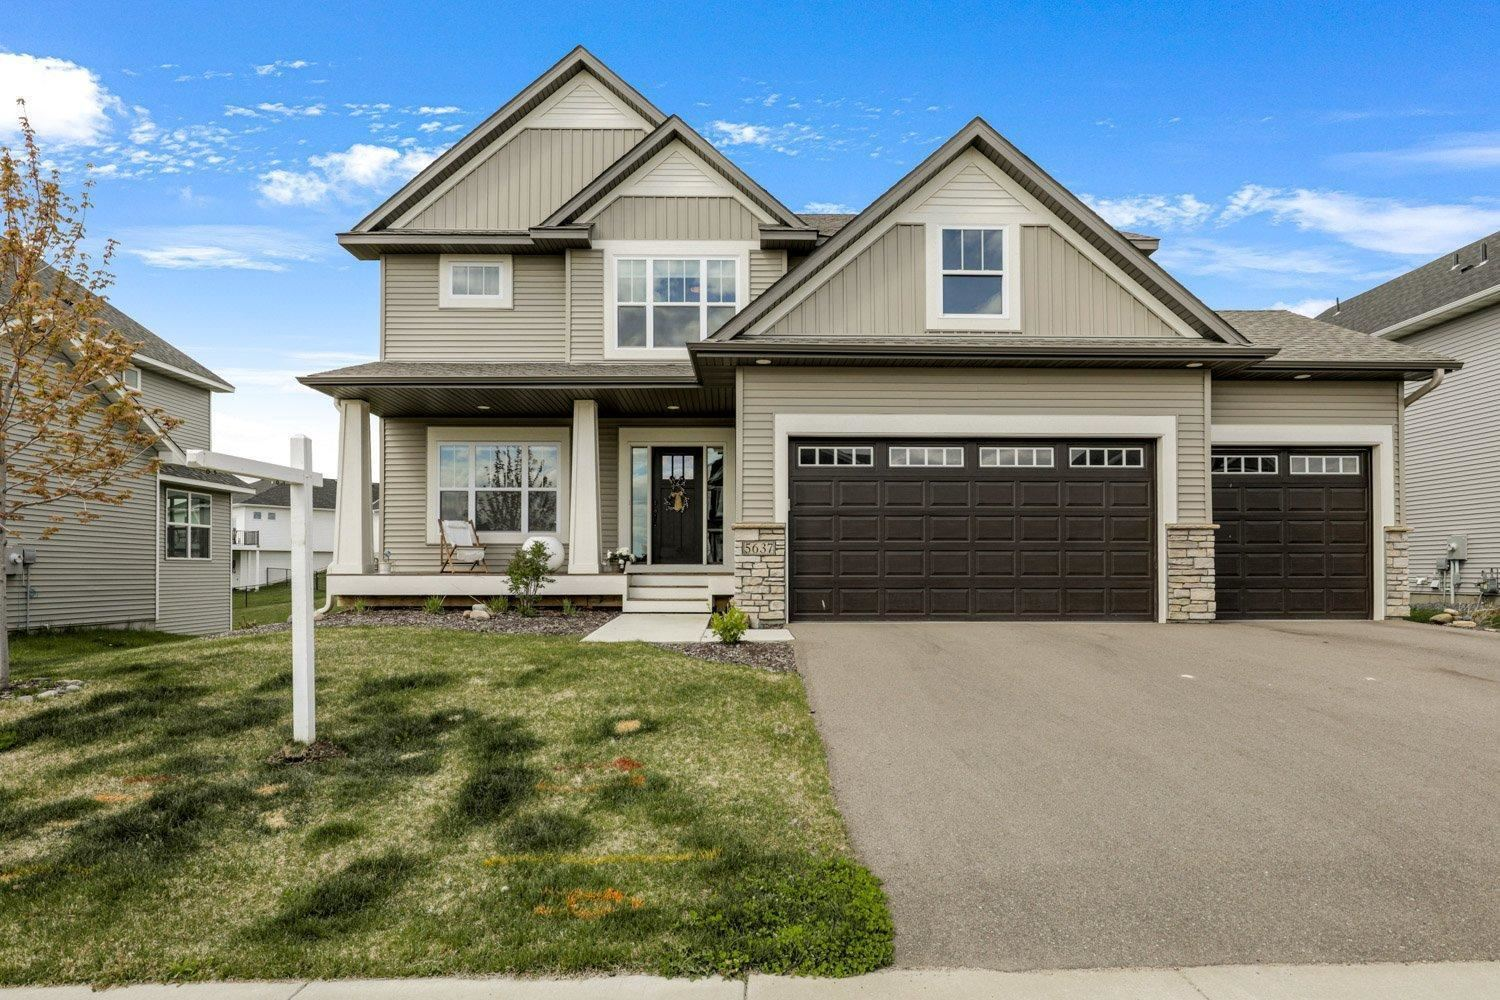 Photo of 5637 162nd Street W, Lakeville, MN 55044 (MLS # 5752199)